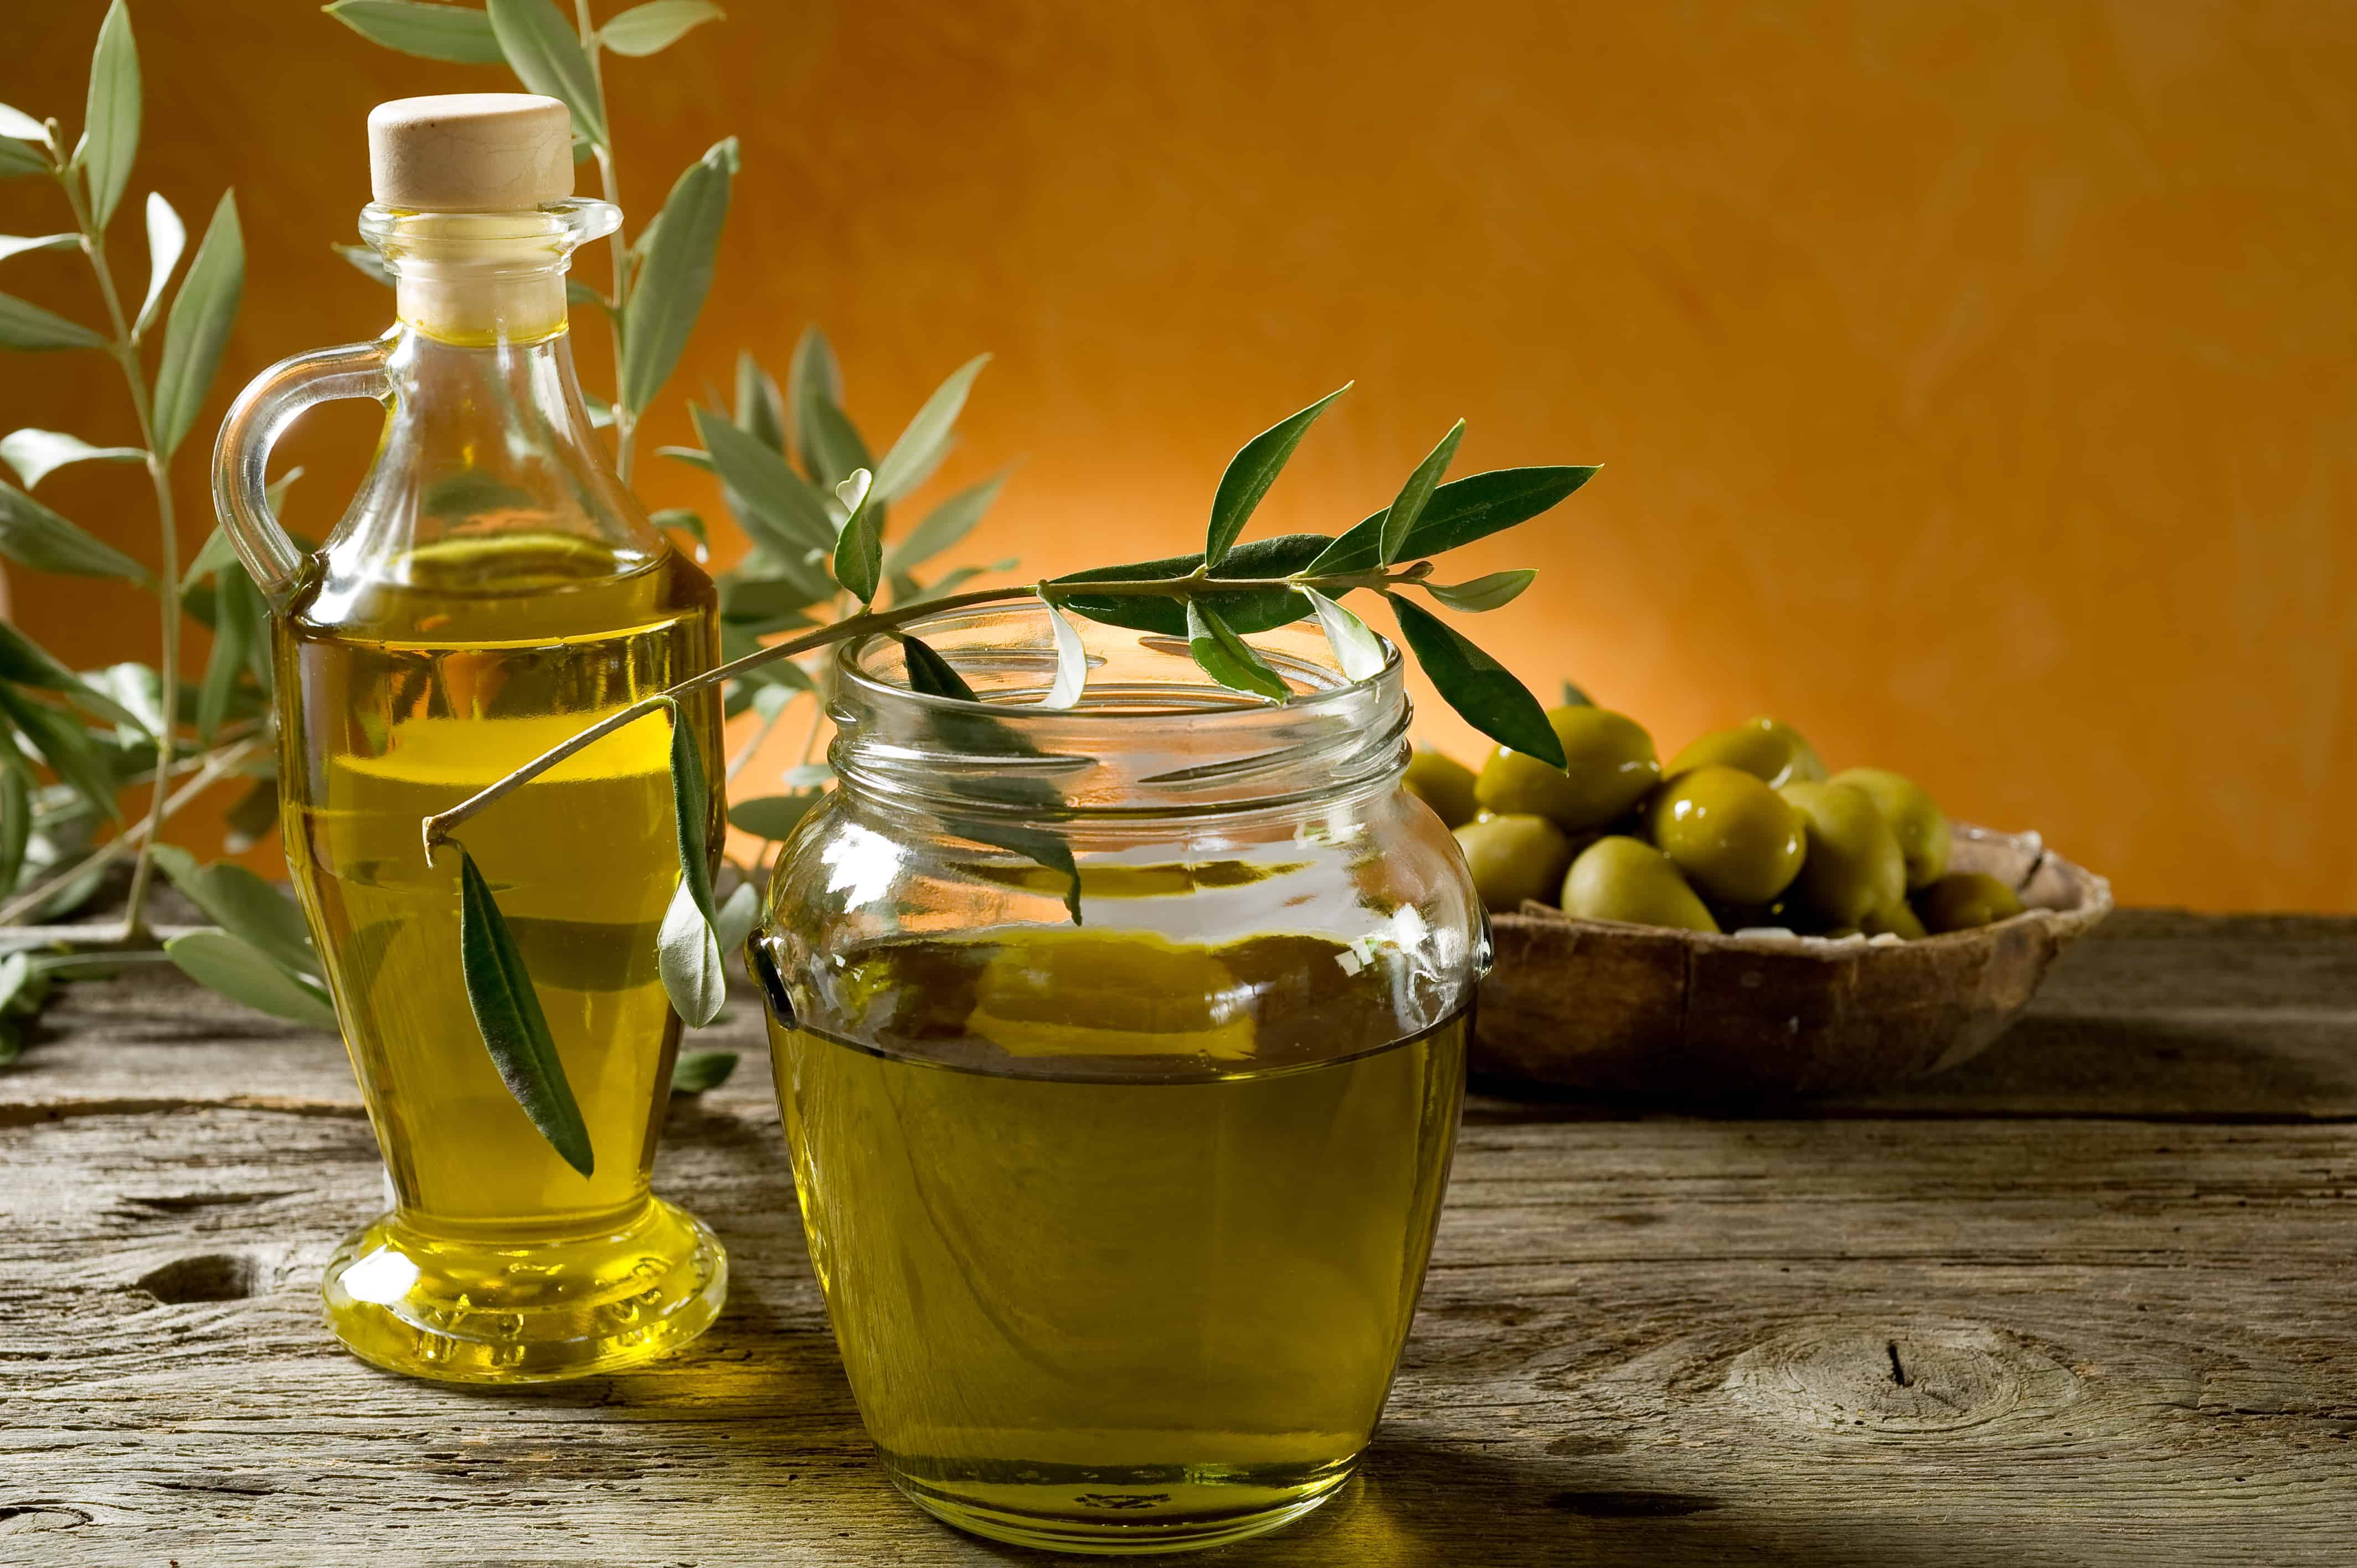 Evoo oil benefits